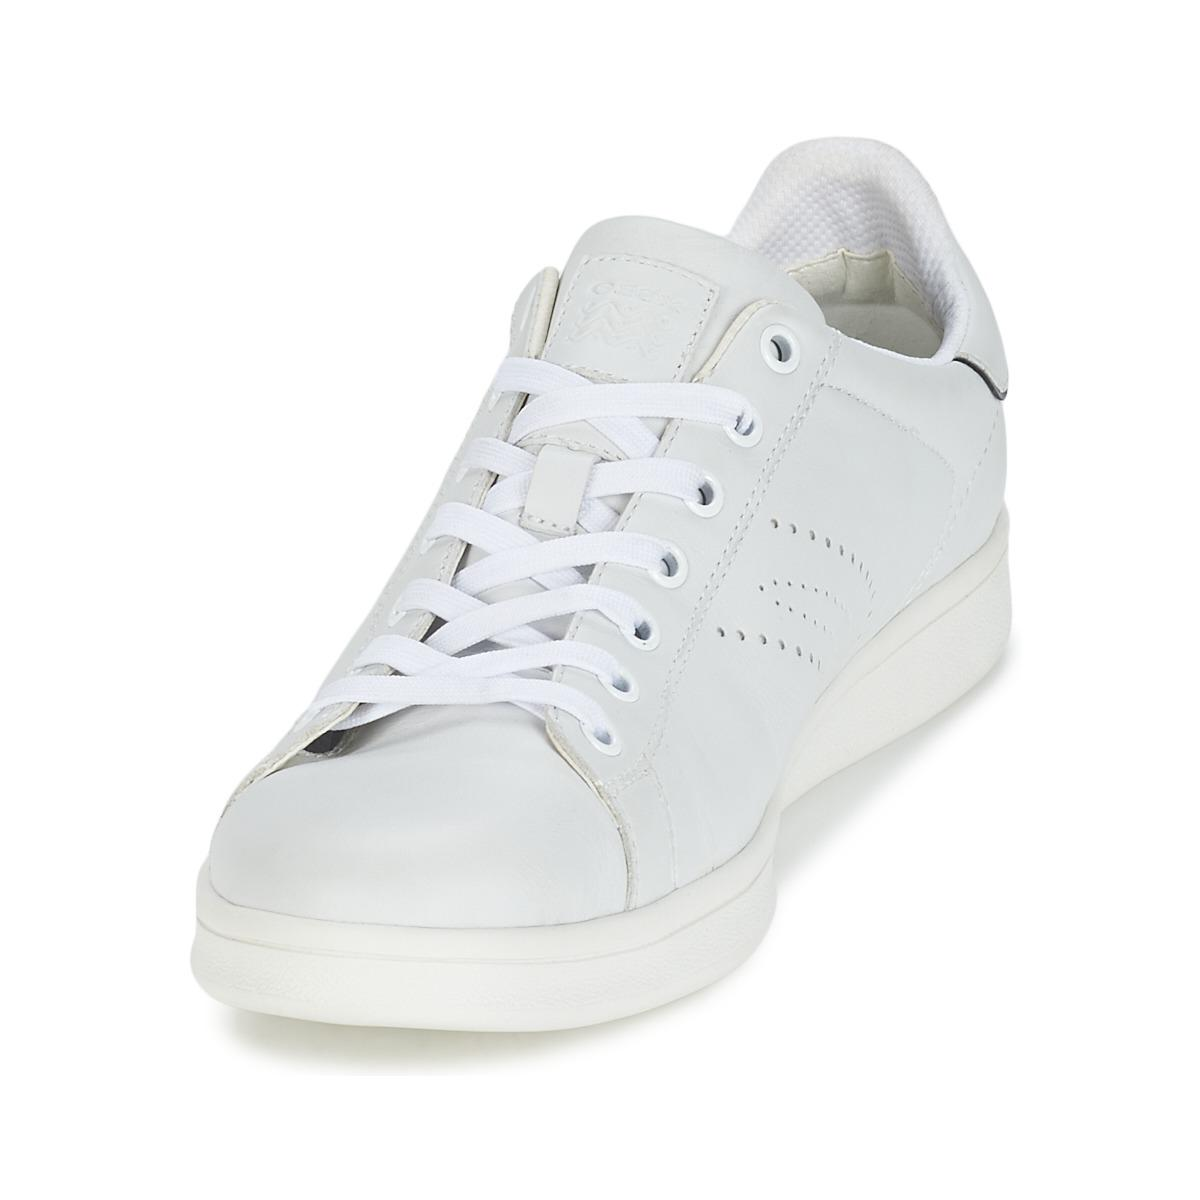 8adf6a3156 Geox Warrens B Men's Shoes (trainers) In White in White for Men - Lyst